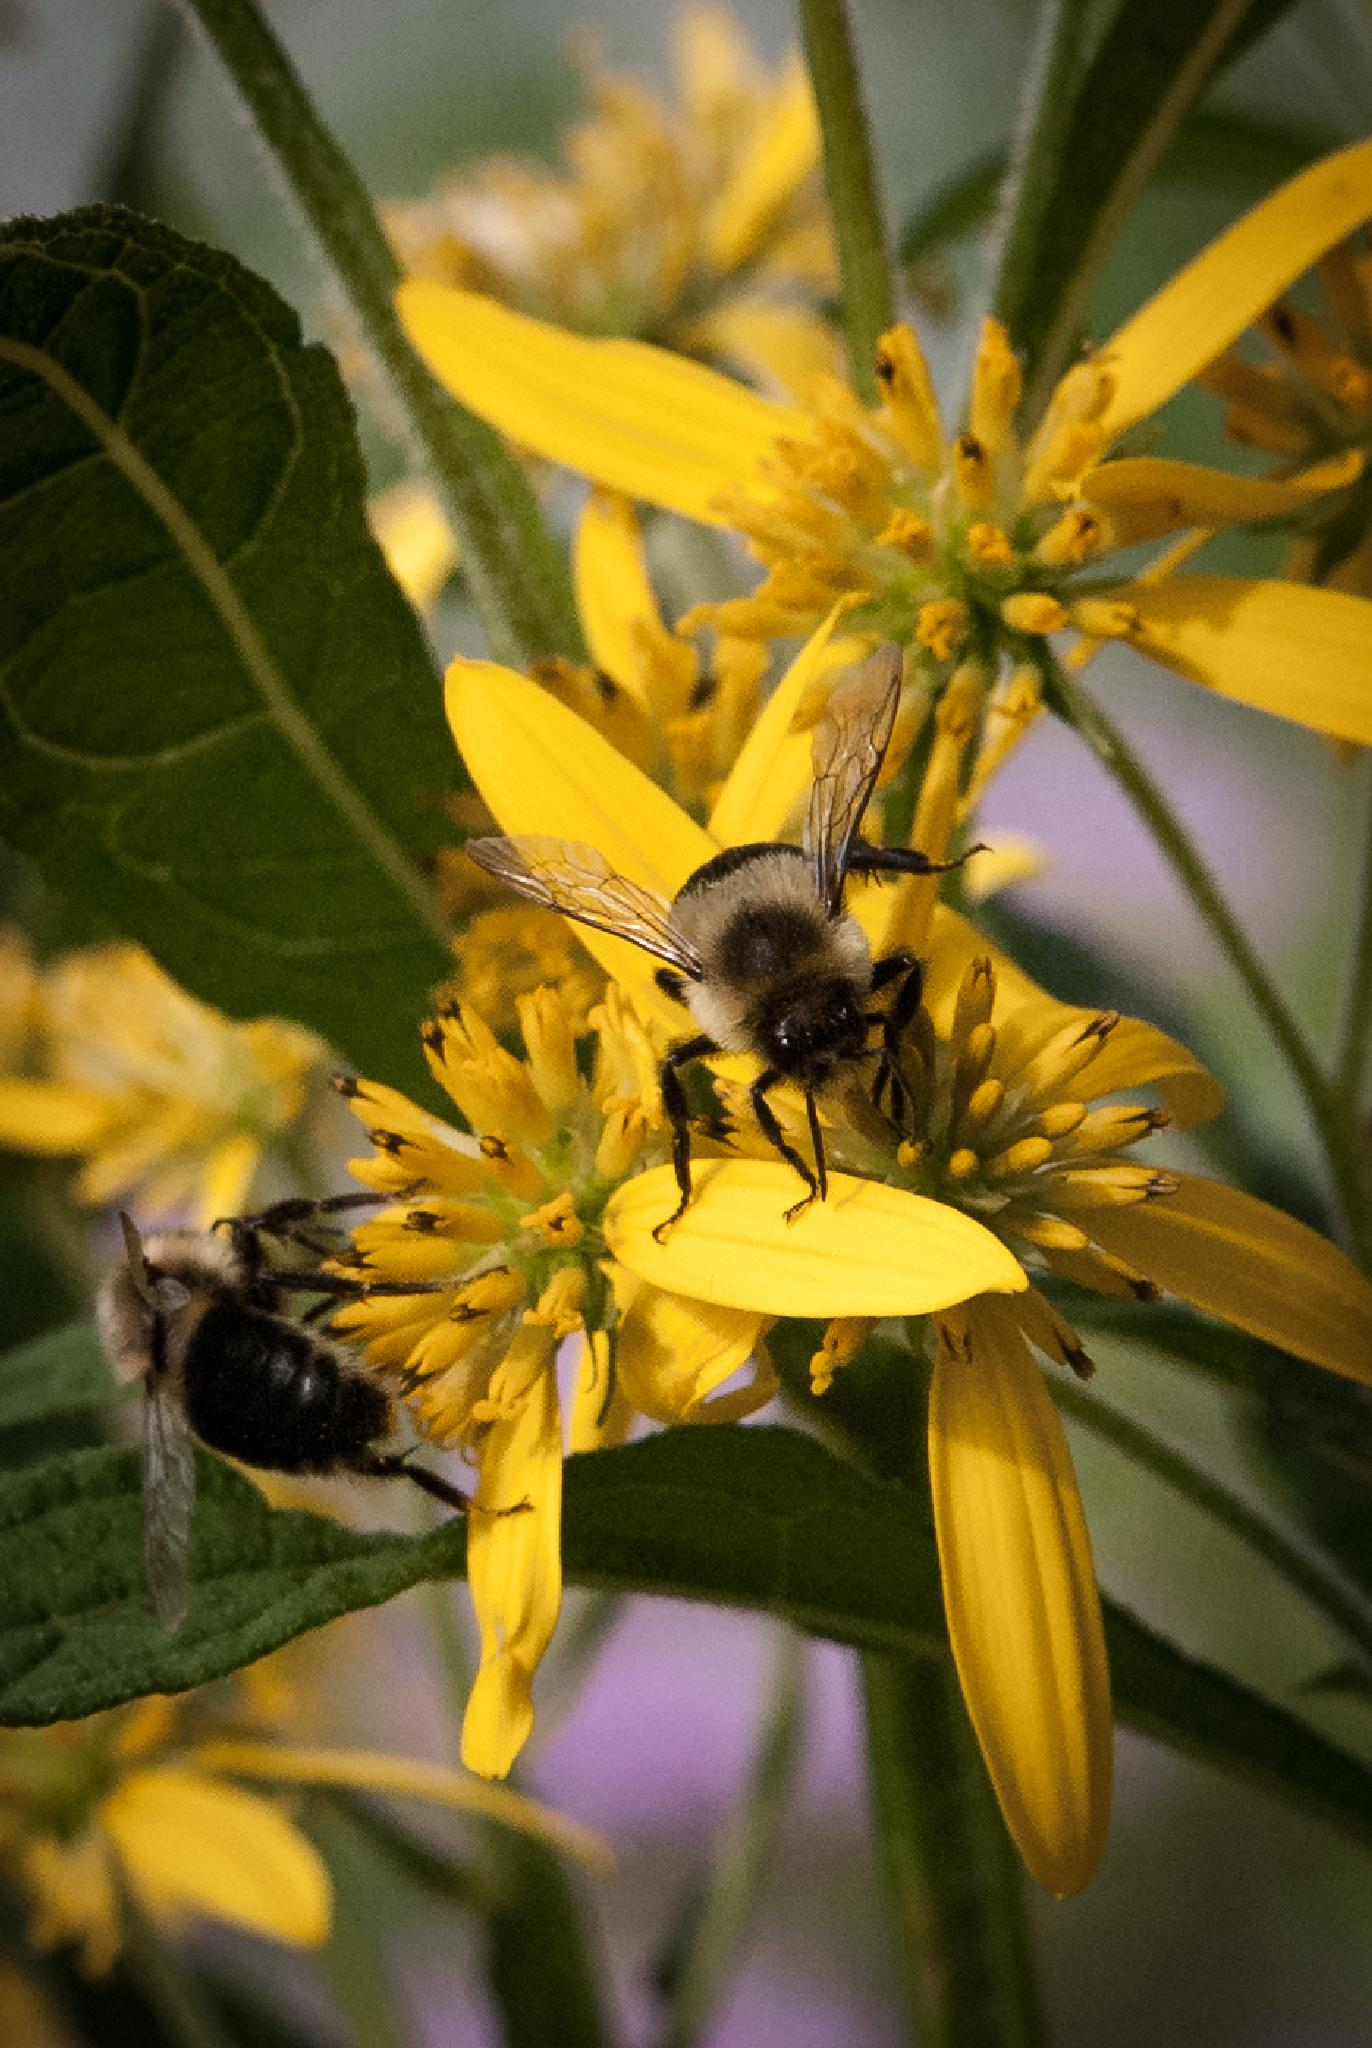 Double Bumble by mgrphotography